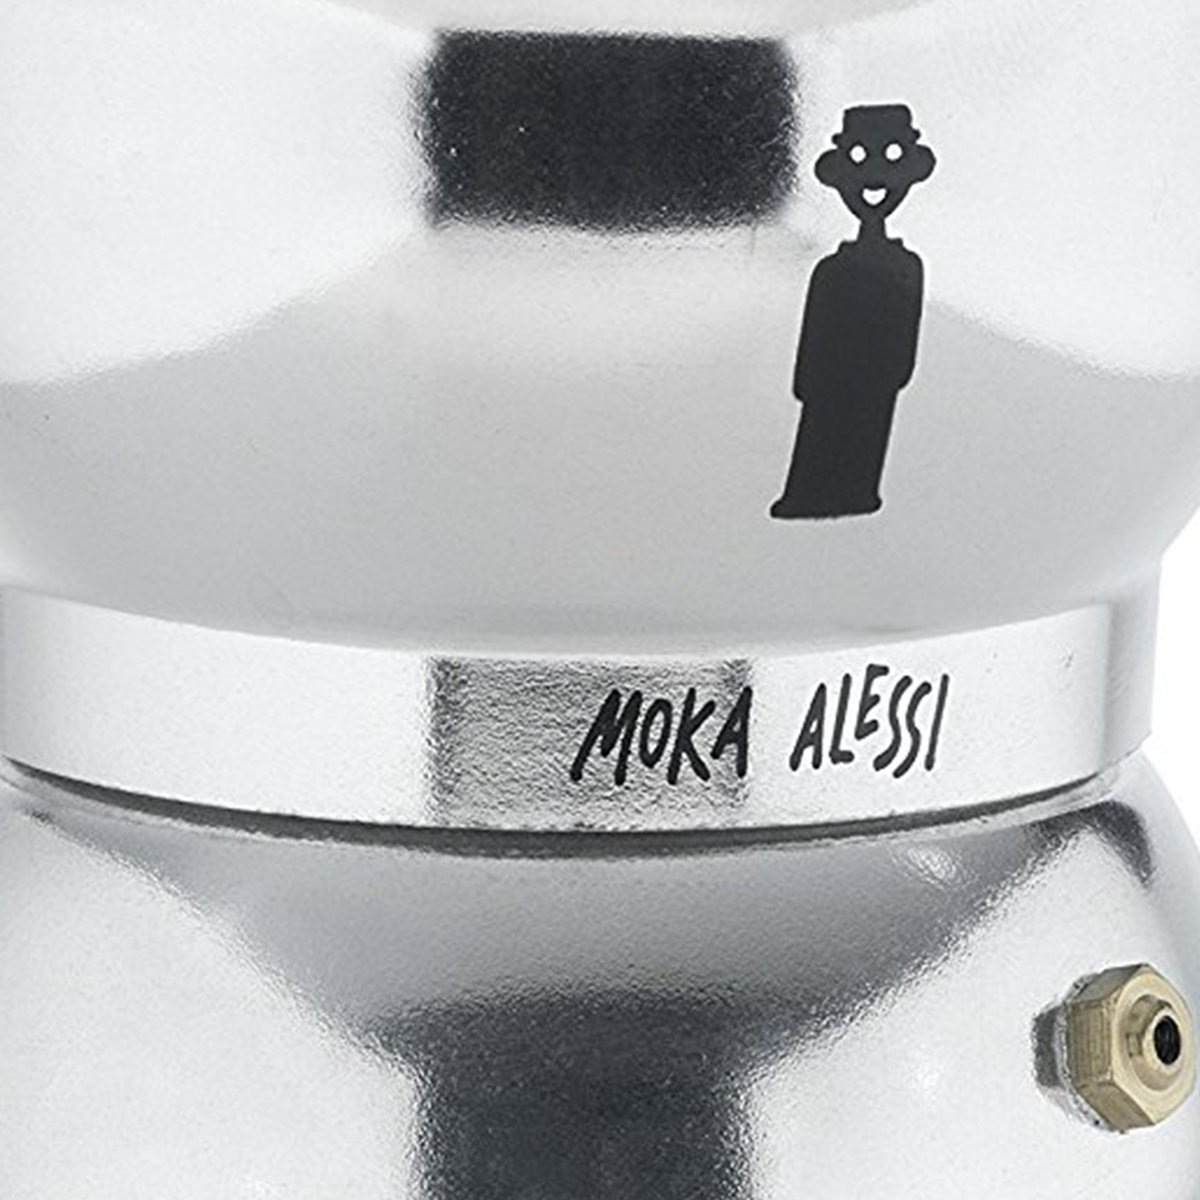 Alessi AAM33/6 ''Moka'' Stove Top Espresso 6 Cup Coffee Maker in Aluminium Casting Handle And Knob in Thermoplastic Resin, Black